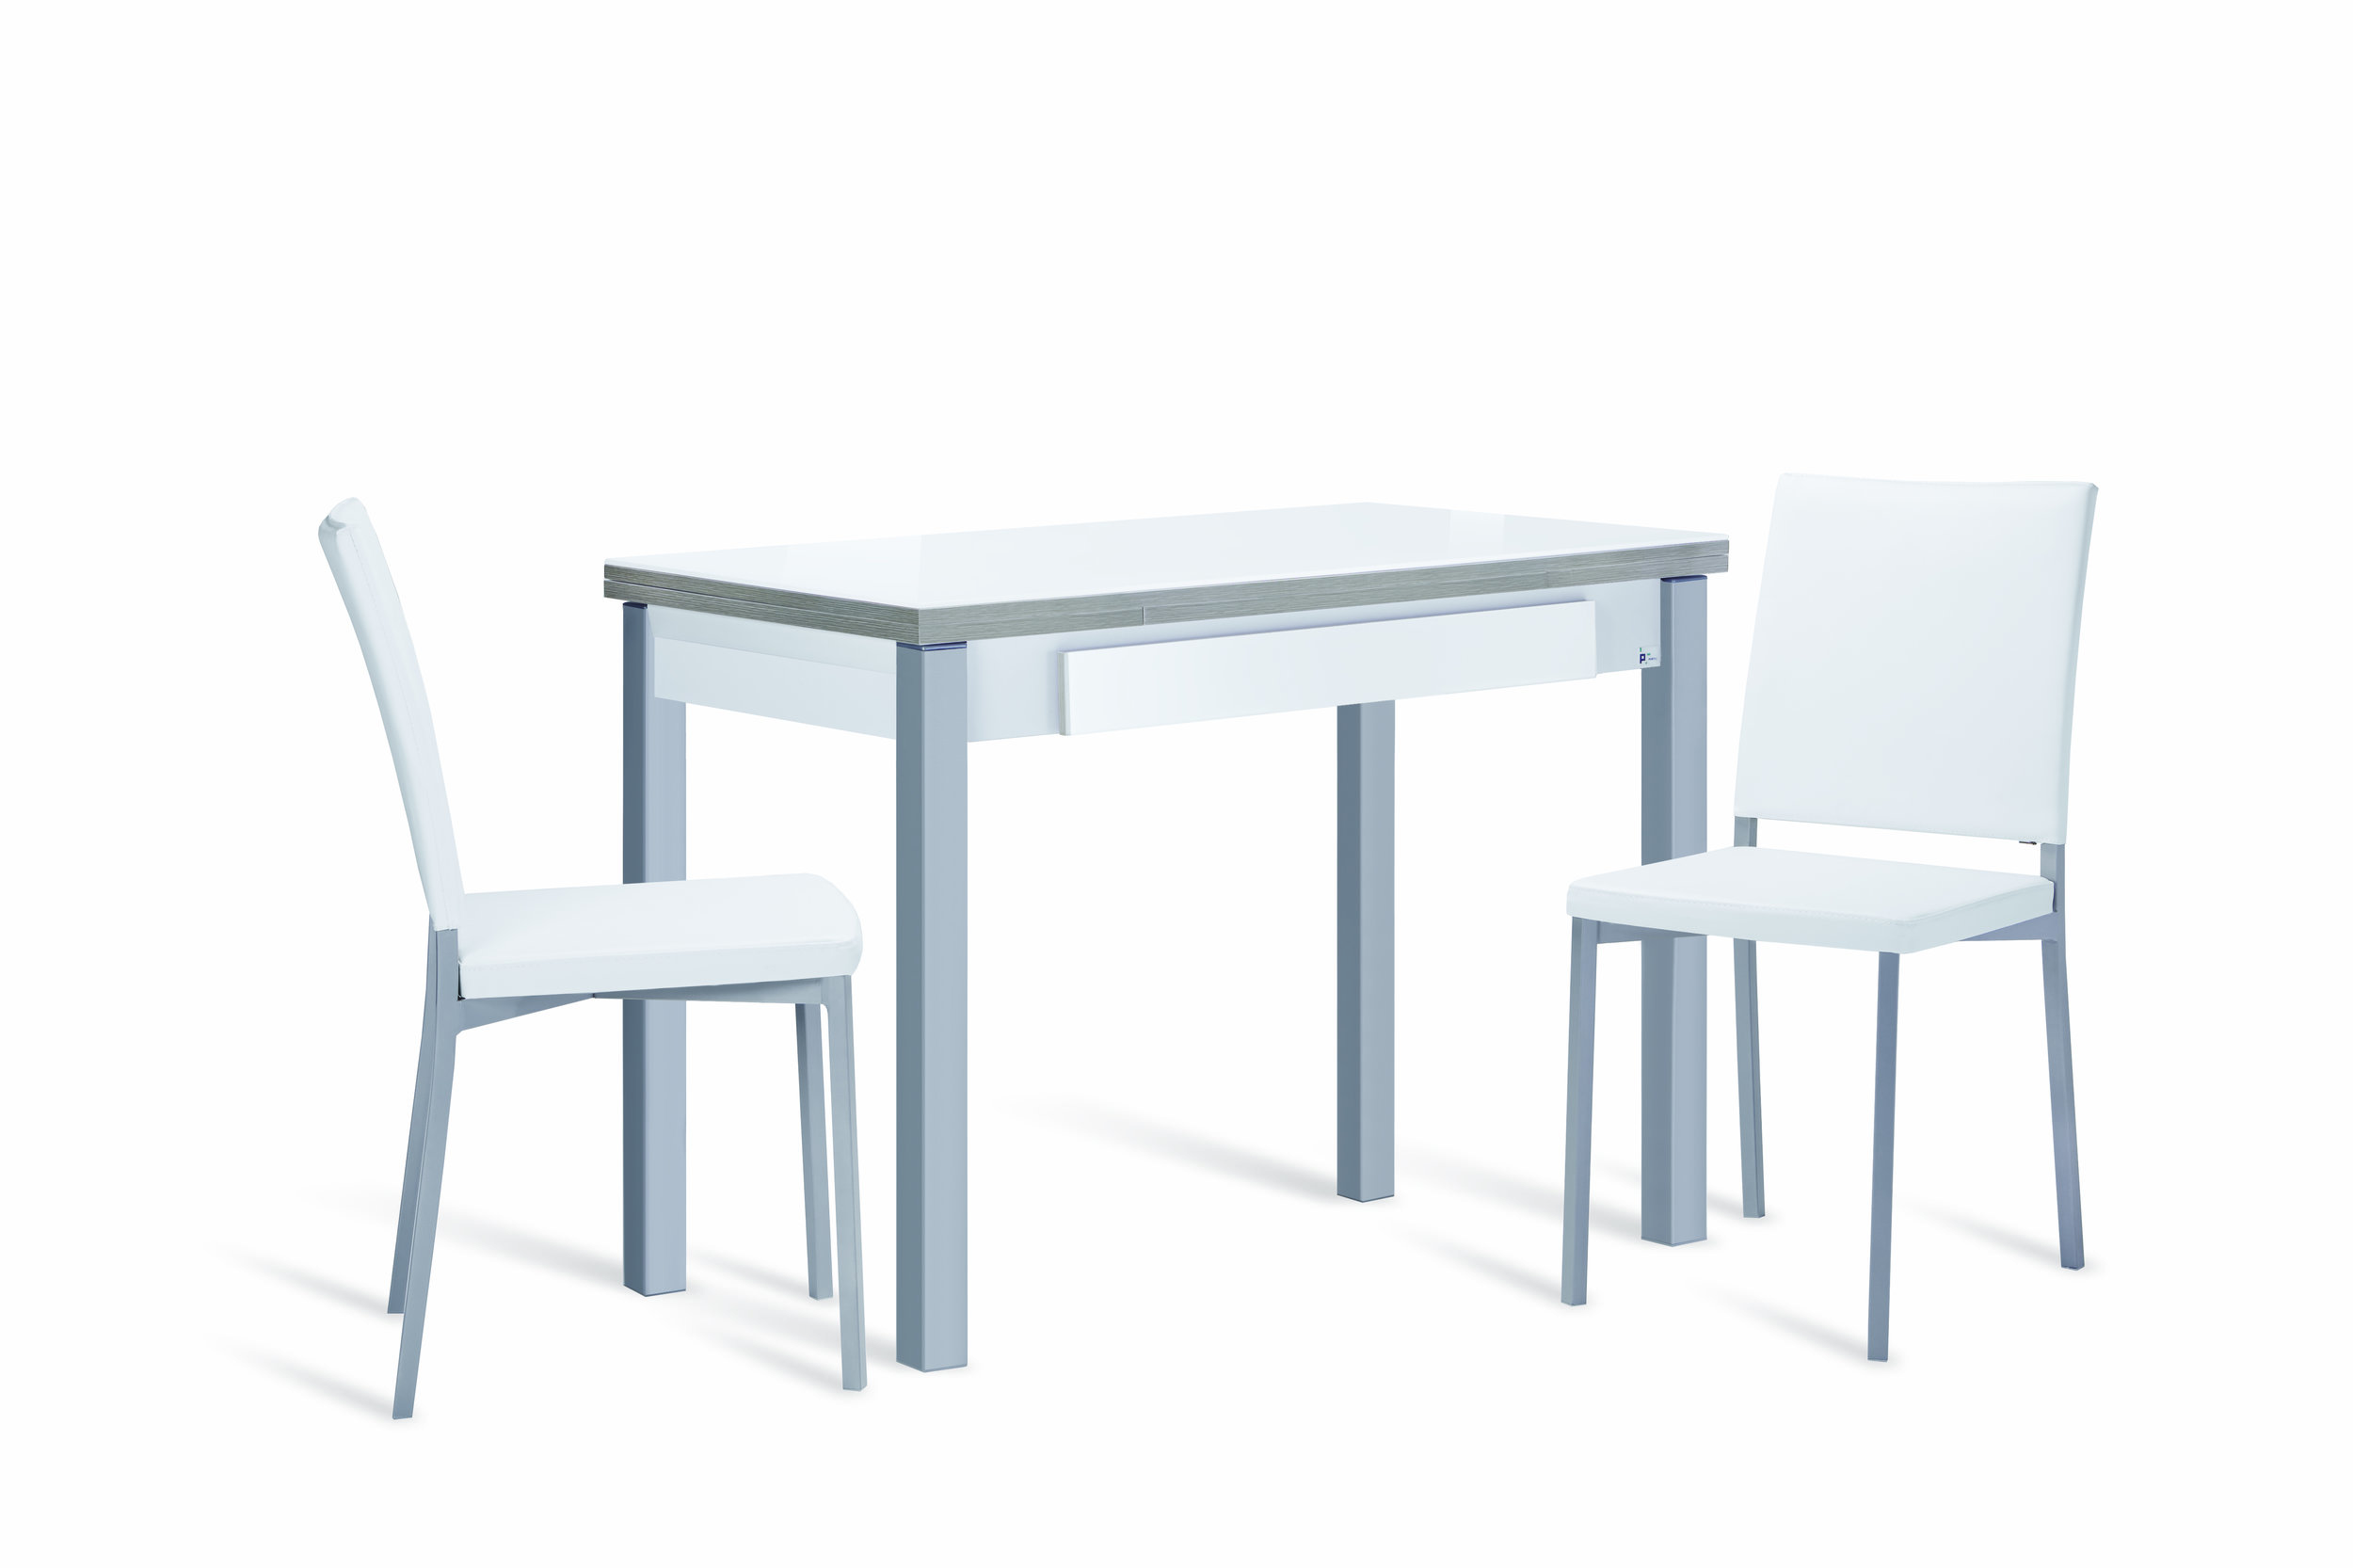 HARMONIA Table and CANELA chairs